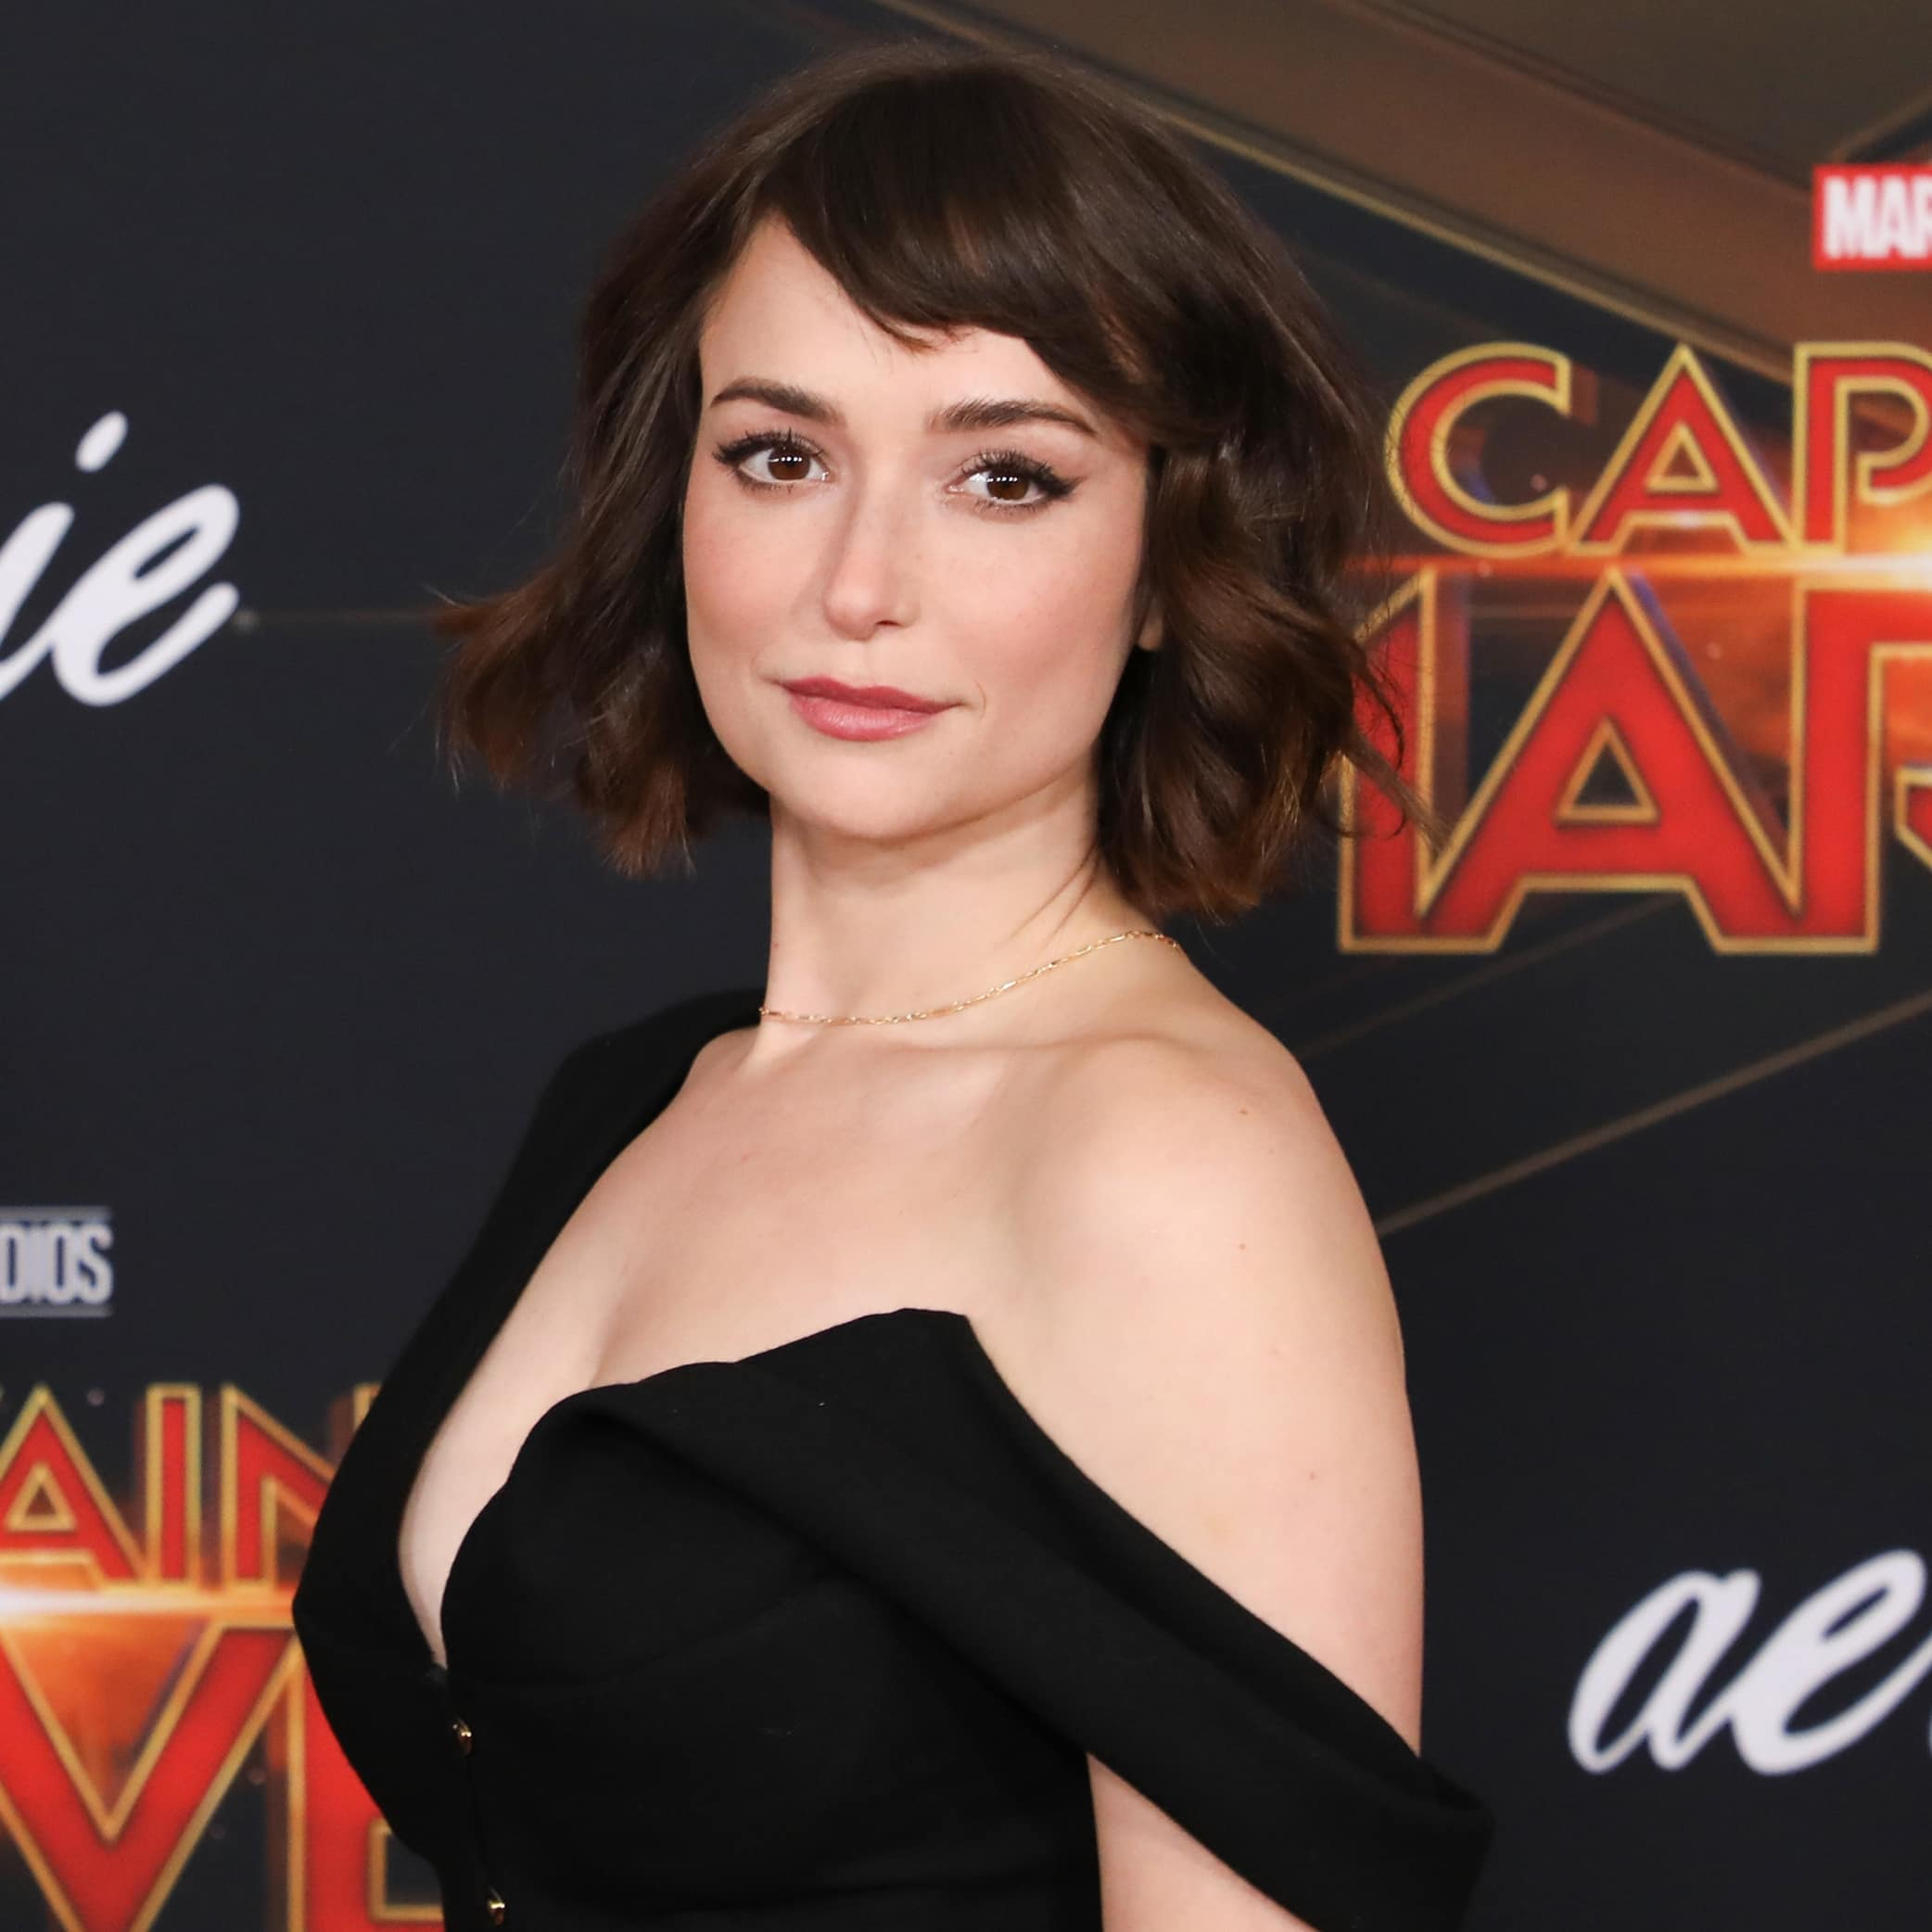 The internet has memeified Milana Vayntrub's breasts and she has spoken out against online sexual harassment